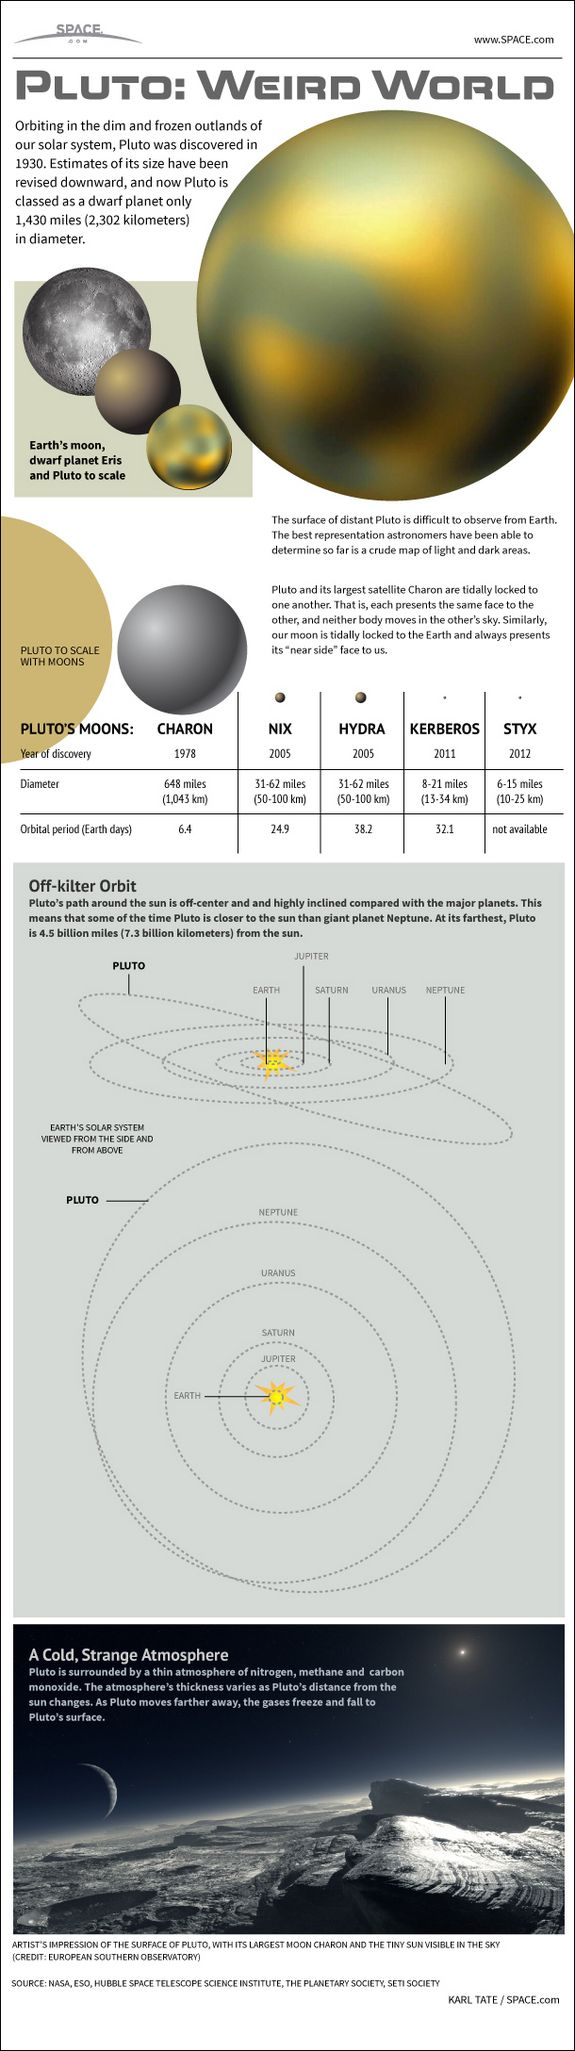 Pluto: A Dwarf Planet Oddity (Infographic) | Pluto Facts & Figures | Pluto Moons & Atmosphere | Space.com